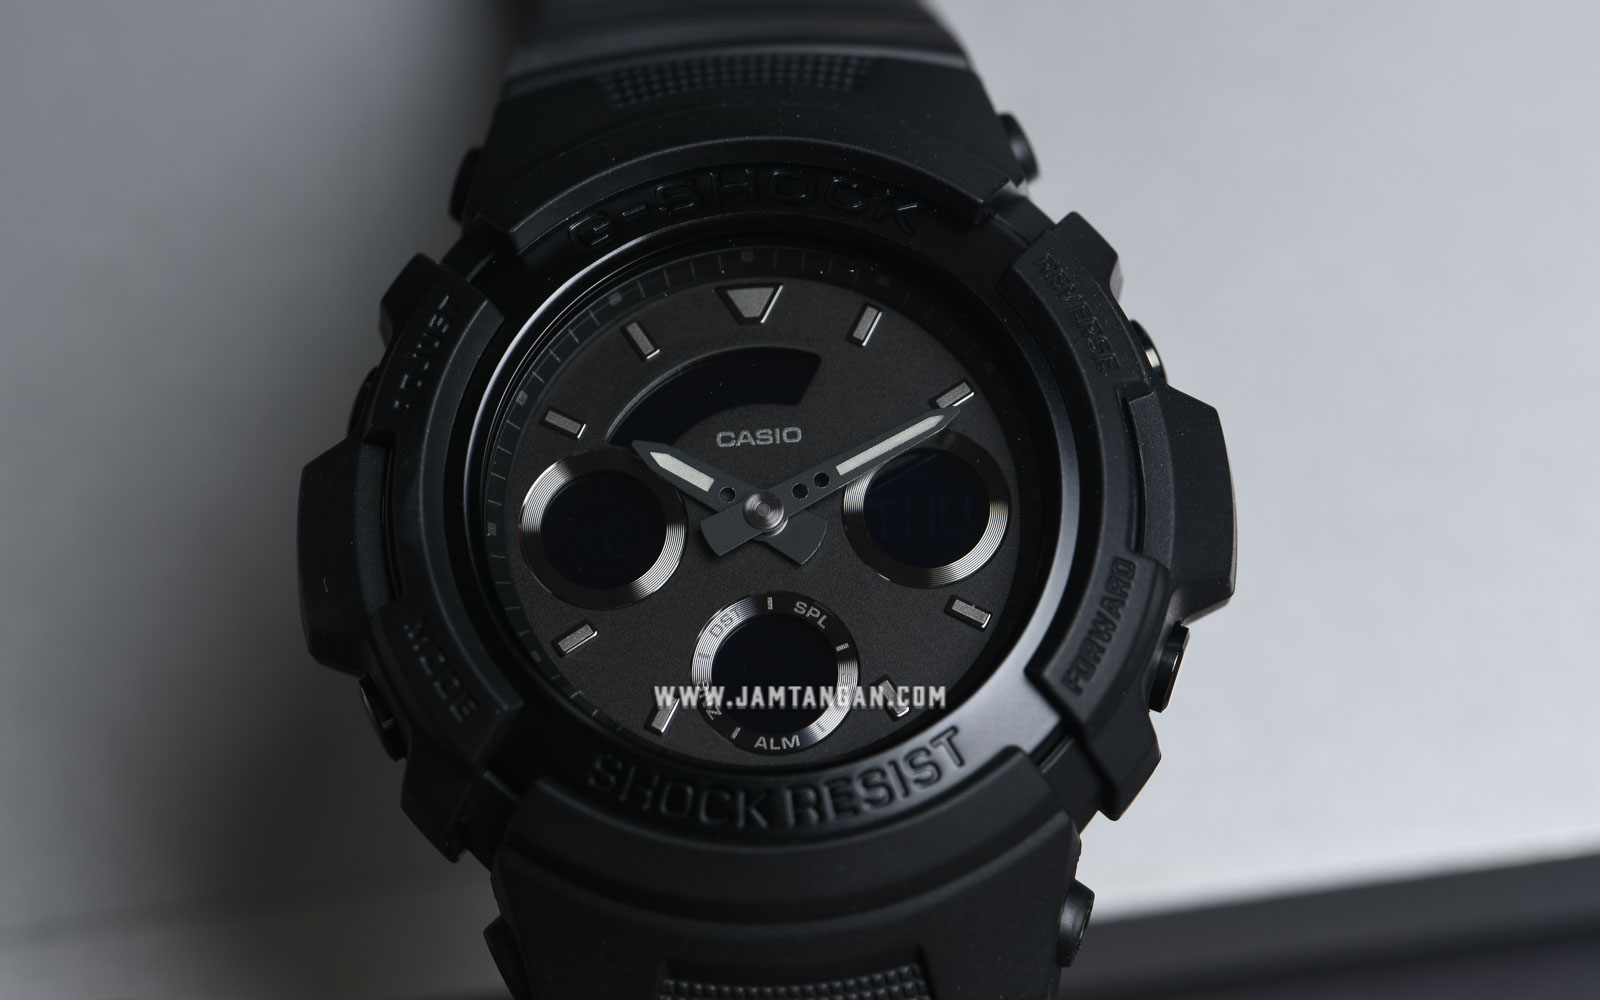 Casio G-Shock AW-591BB-1ADR Water Resistant 200M Black Resin Band Machtwatch